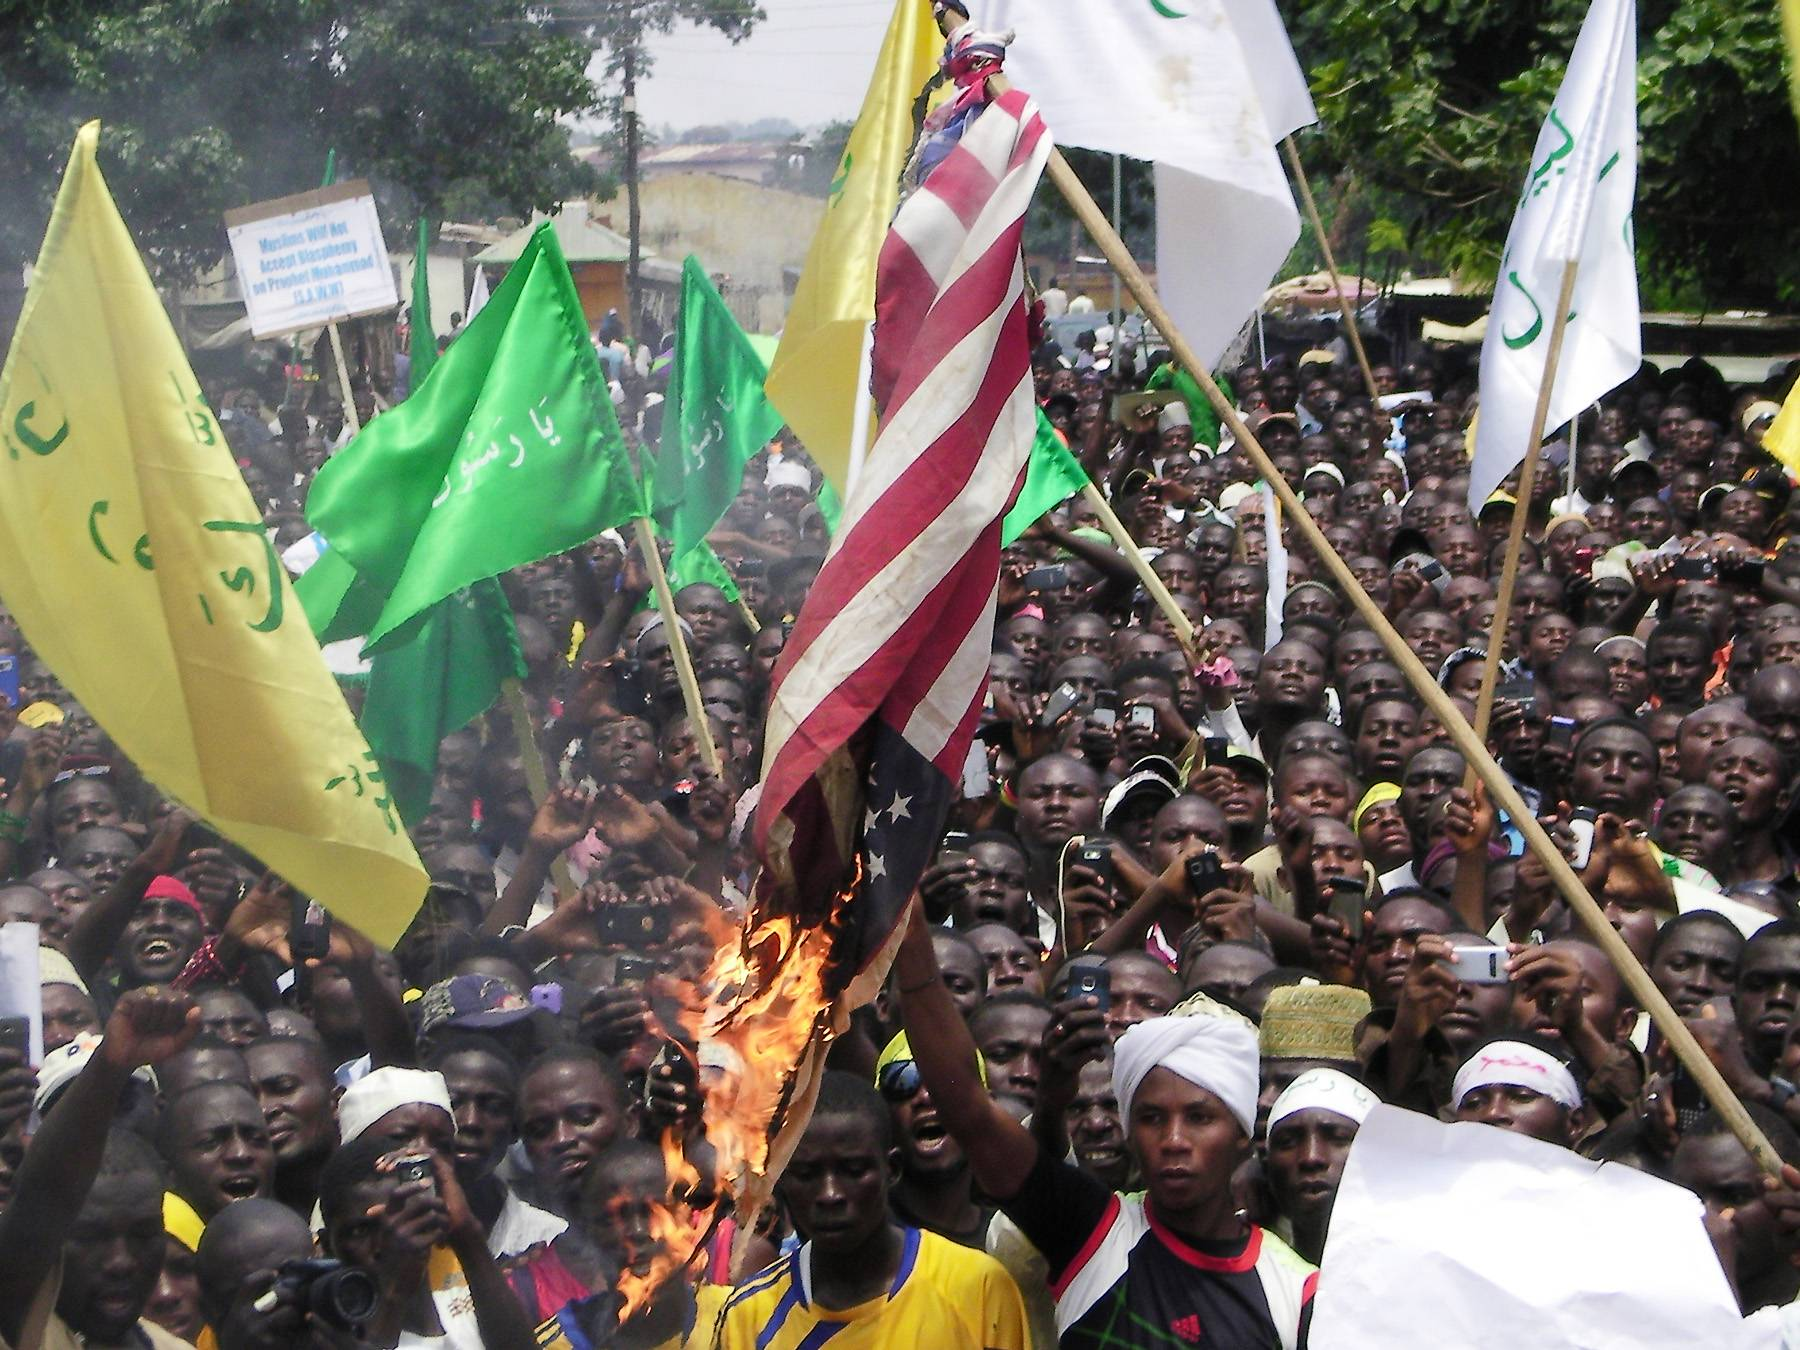 Nigeria Protests Anti-Islam Film - Nigeria was also hit by anti-Islam film protests as hundreds of protesters streamed through the streets of the largely Muslim northern city of Kaduna. (Photo: AP Photo/Godwin Attah)